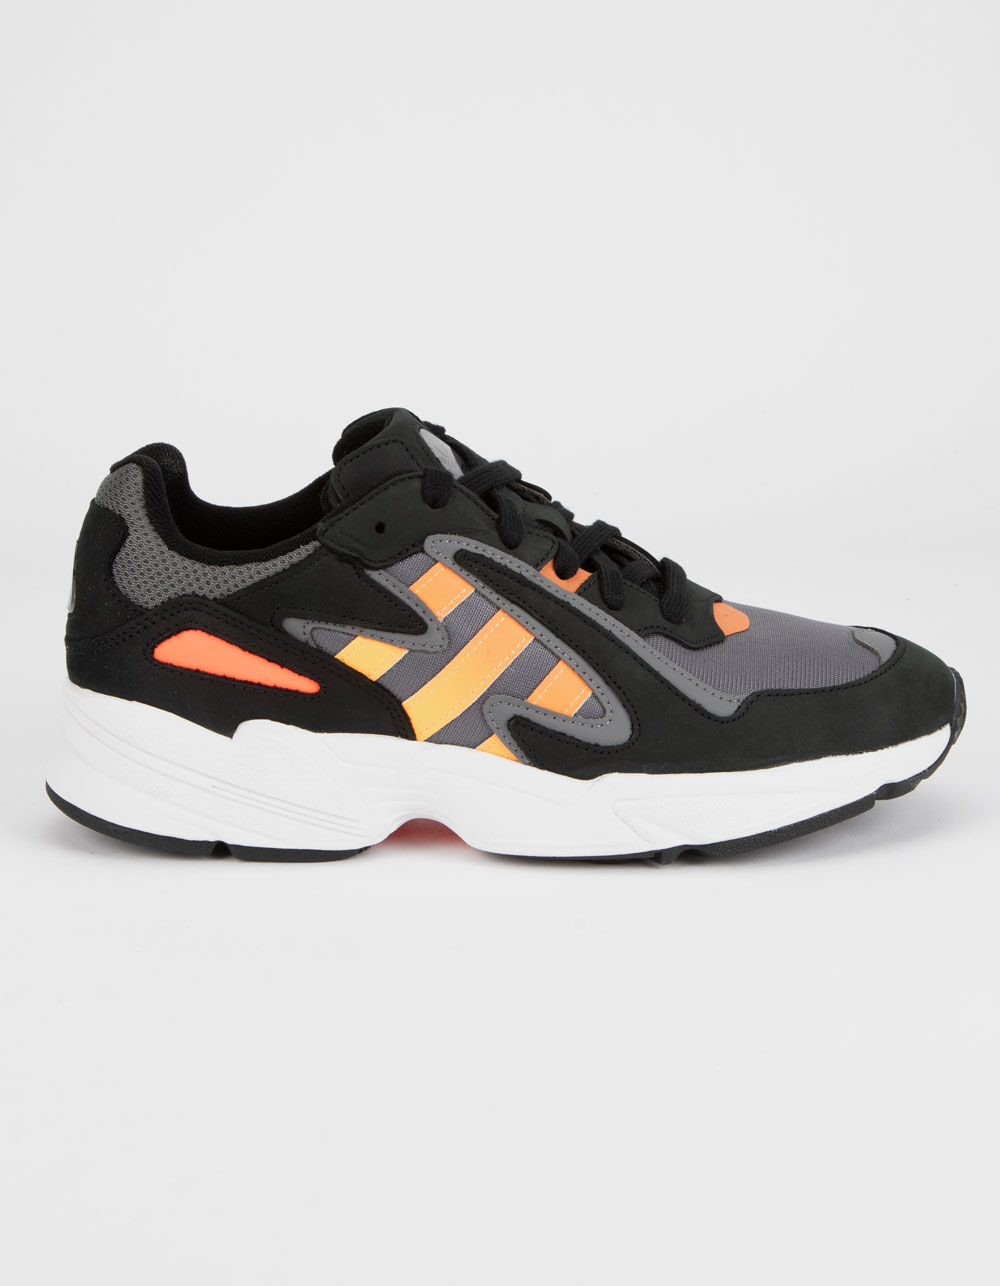 ADIDAS Yung-96 Chasm Core Black & Sol Red Shoes